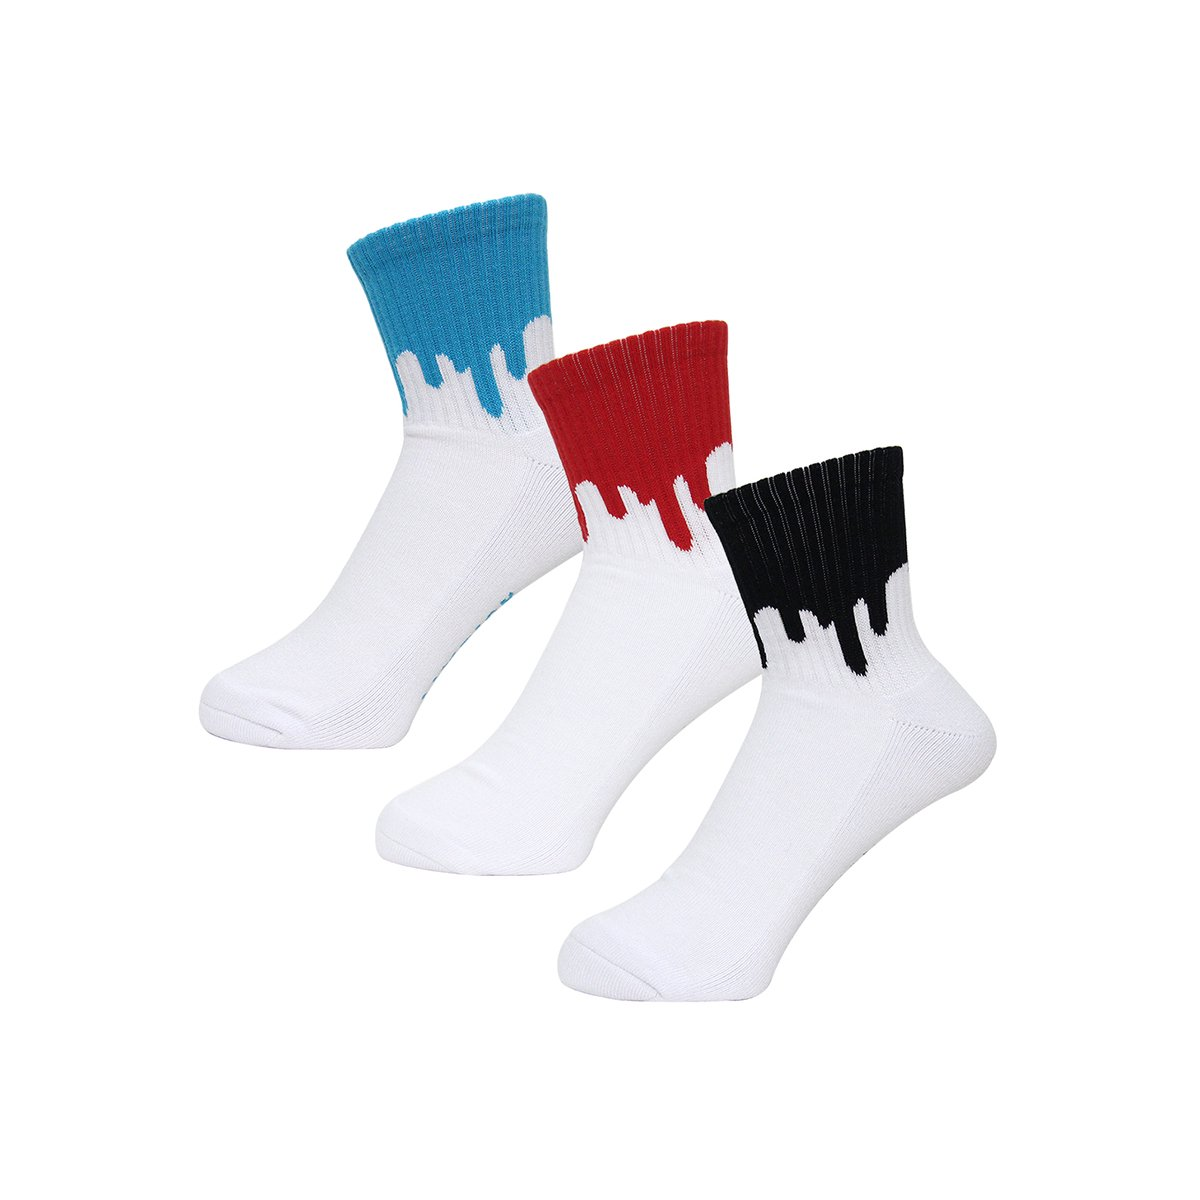 <img class='new_mark_img1' src='//img.shop-pro.jp/img/new/icons29.gif' style='border:none;display:inline;margin:0px;padding:0px;width:auto;' />LIXTICK DRIP SOCKS 3PACK (2nd)